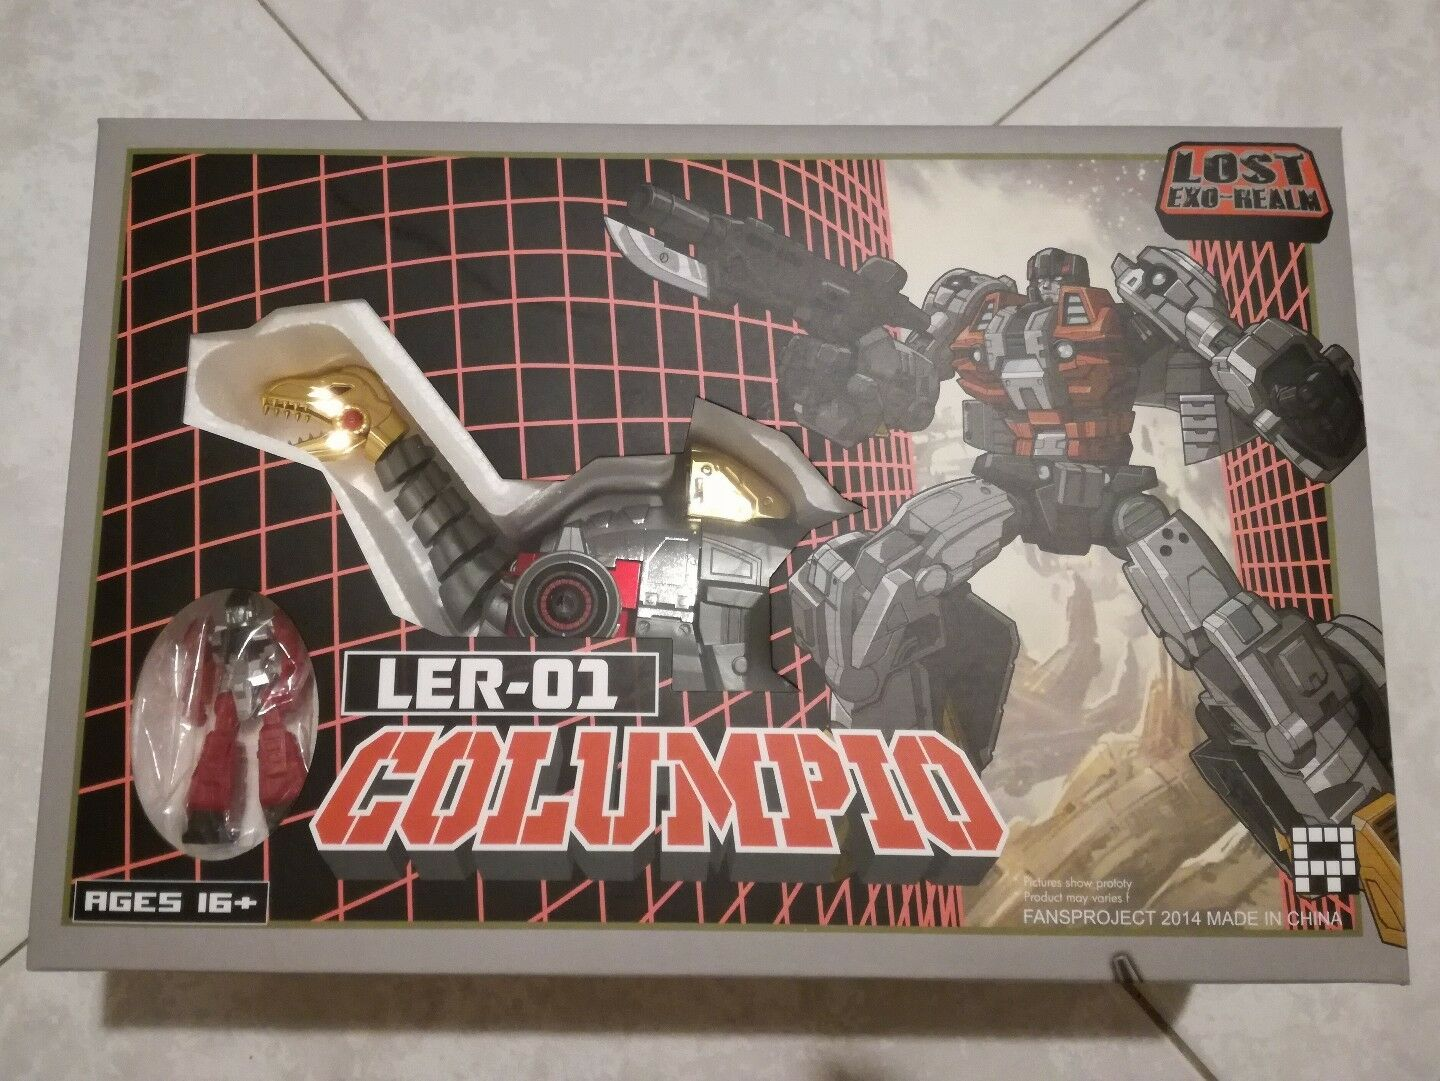 FANSPROJECT LOST EXO-REALM LER-01 Columpio  Limited edition TFCON2014 Exclusive